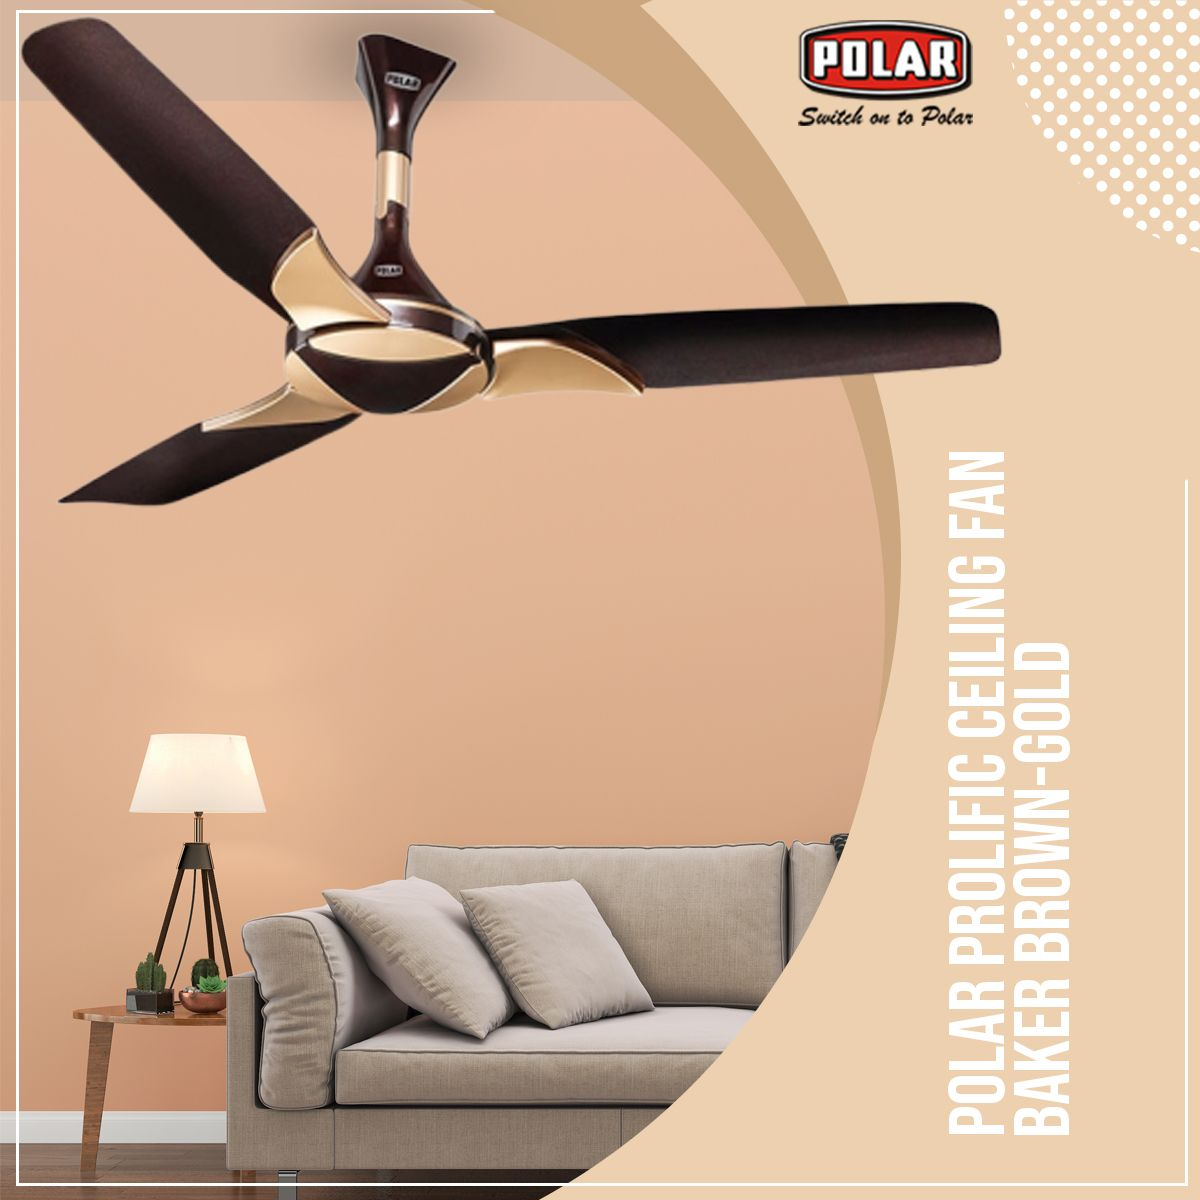 Polar Brings To You Ceiling Fan With The Innovative And Contemporary Design That Will Surel Ceiling Fan Bedroom Dining Room Ceiling Fan Living Room Ceiling Fan